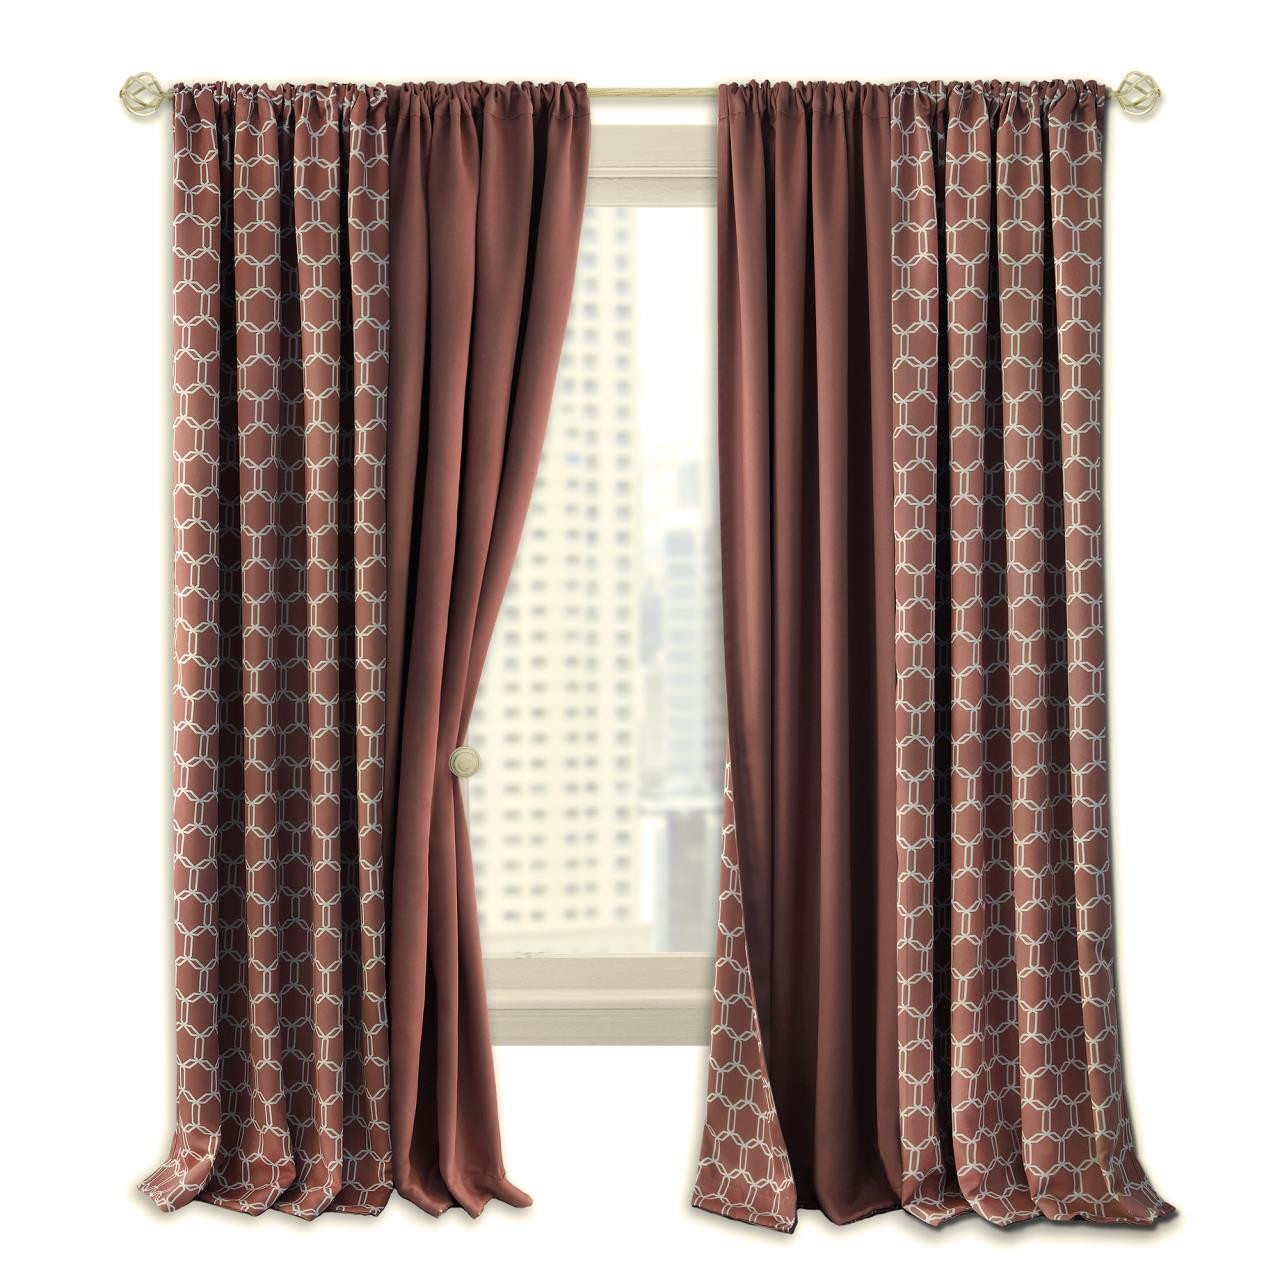 Prelude Reversible Blackout Curtain - 054006250907